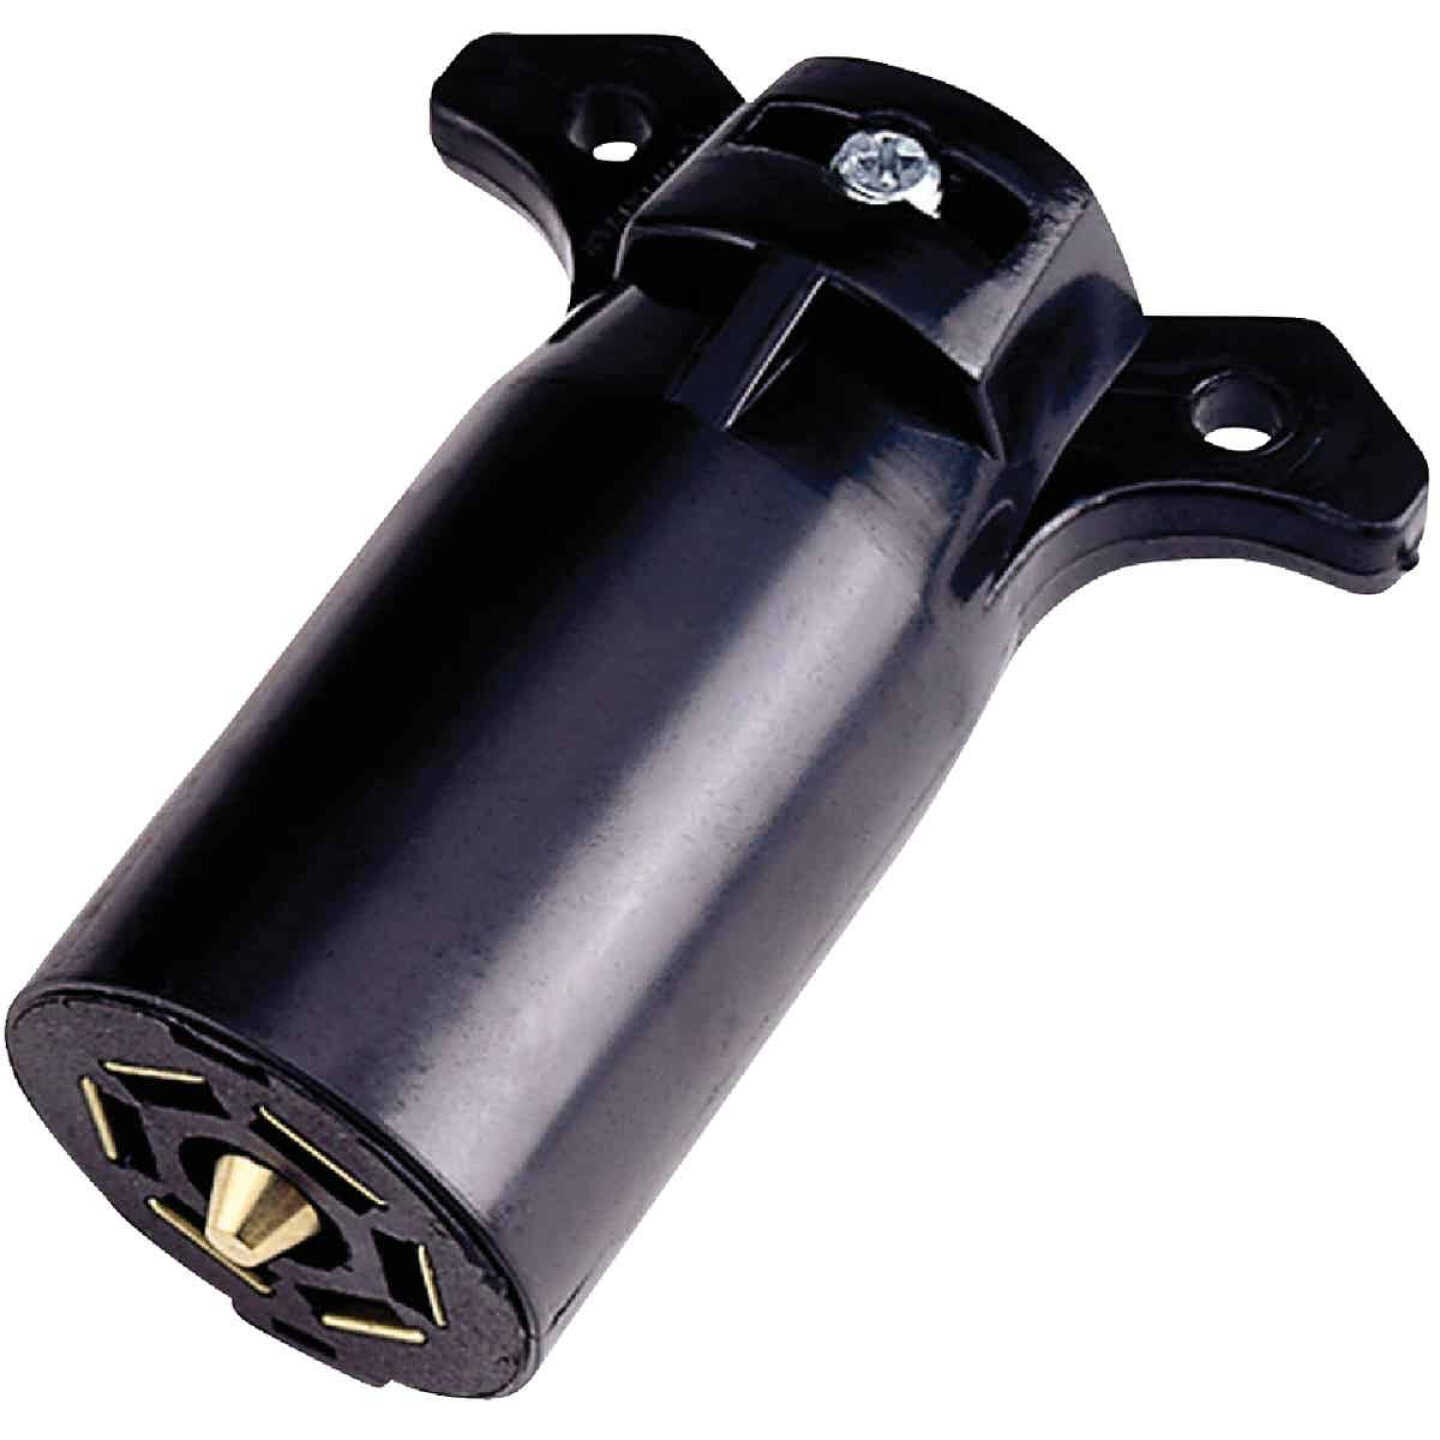 Reese Towpower 7-Blade Trailer Side Connector Image 1